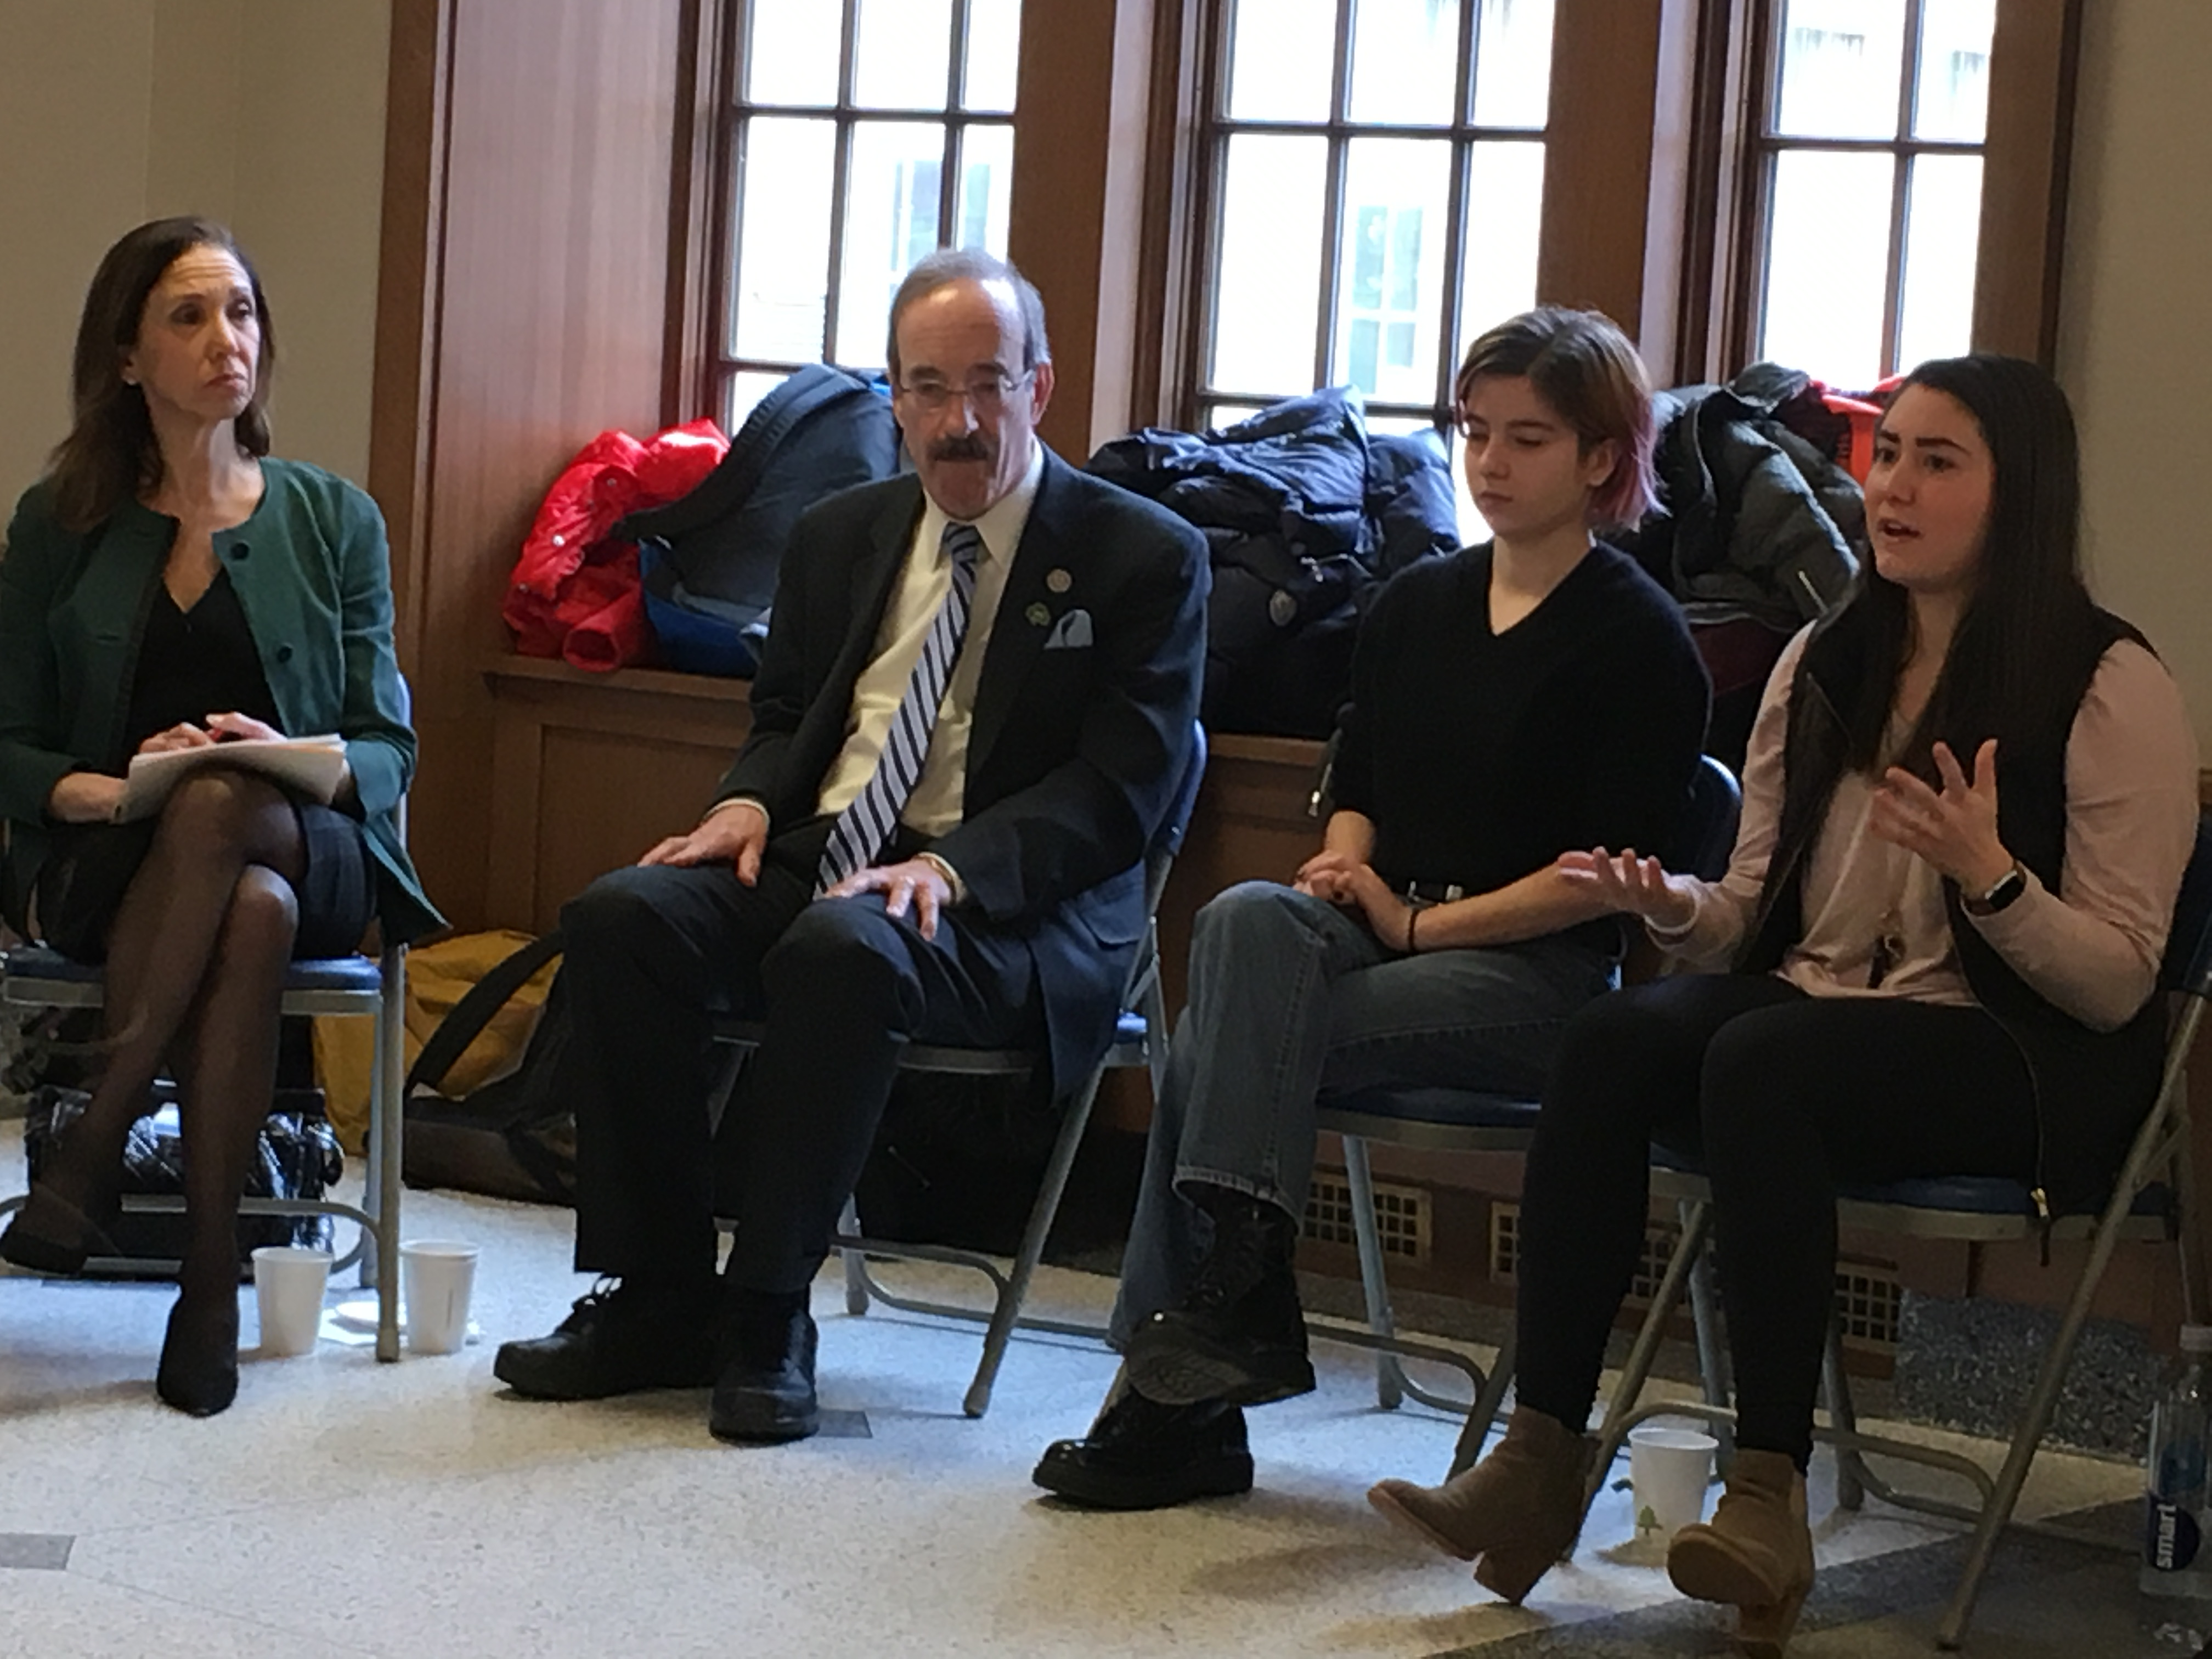 Assemblymember Amy Paulin joins Congressman Eliot Engel and Bronxville High School seniors in a conversation on gun violence and school safety on March 16, 2018.